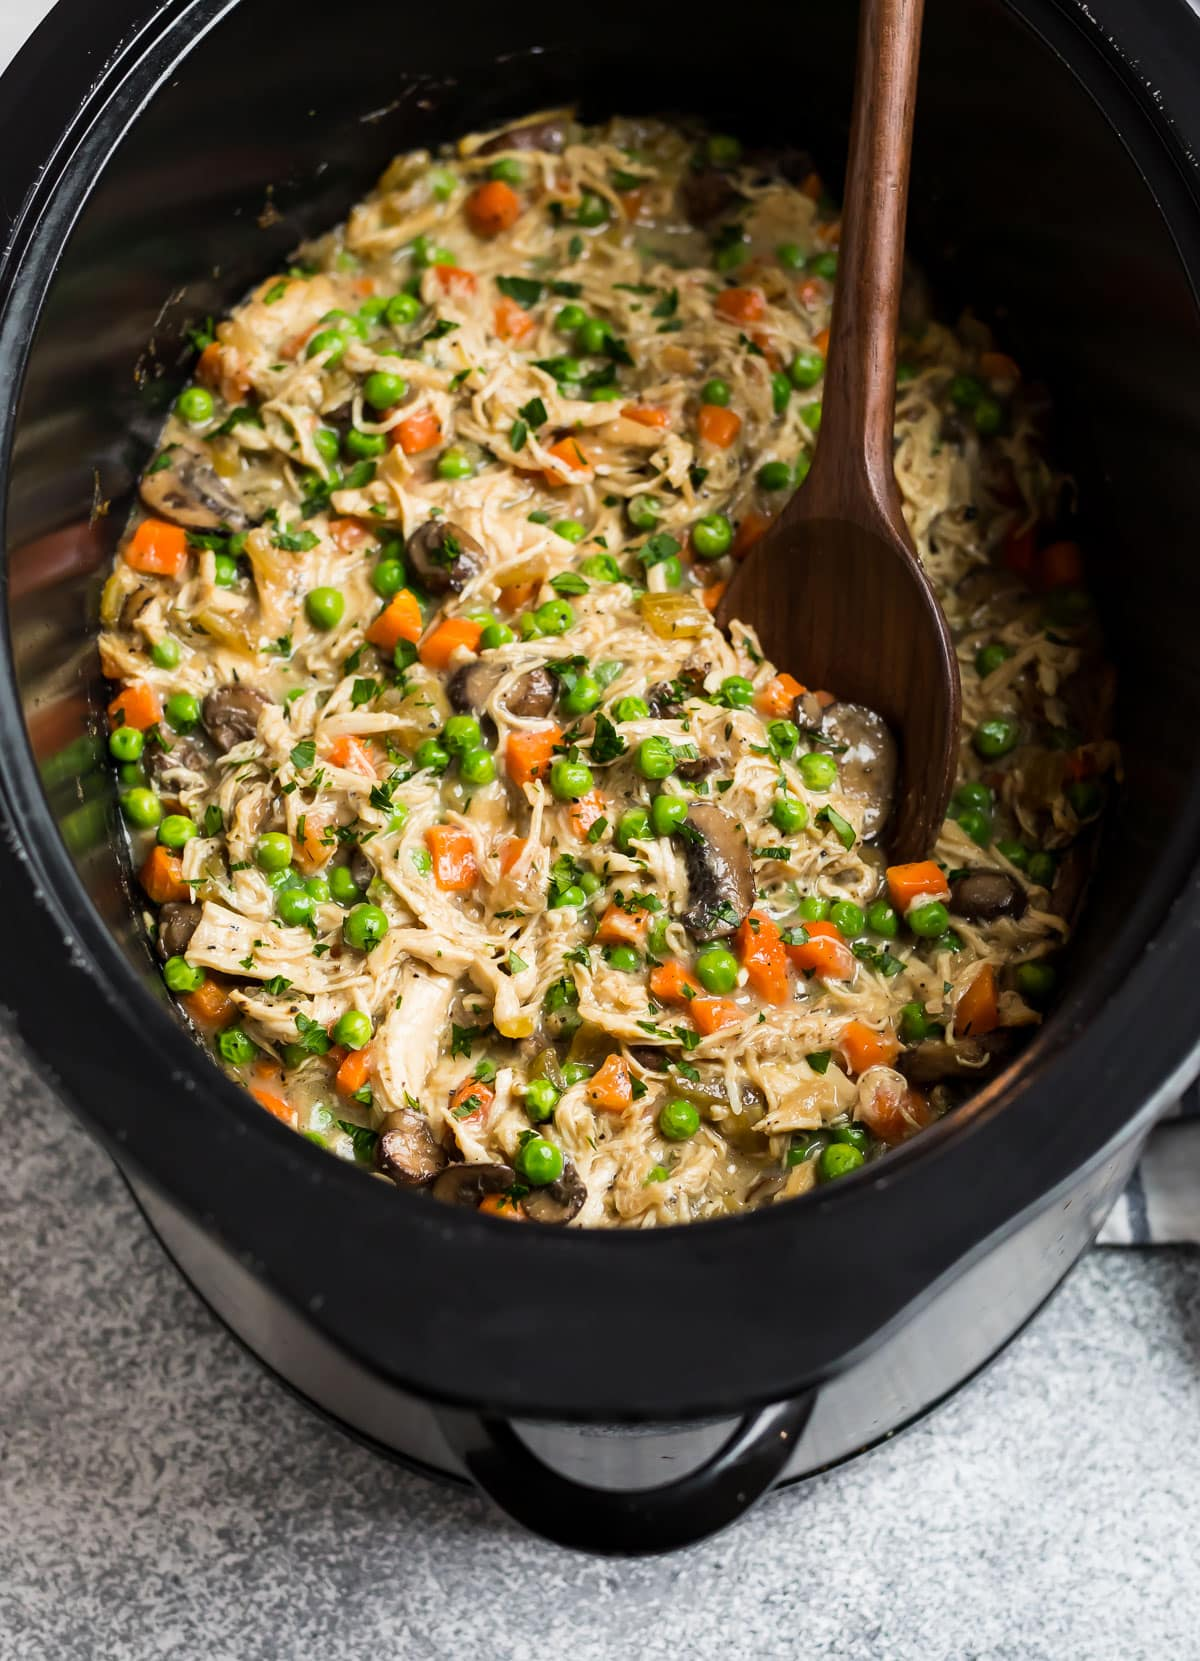 A creamy, hearty mixture of meat and veggies in a slow cooker